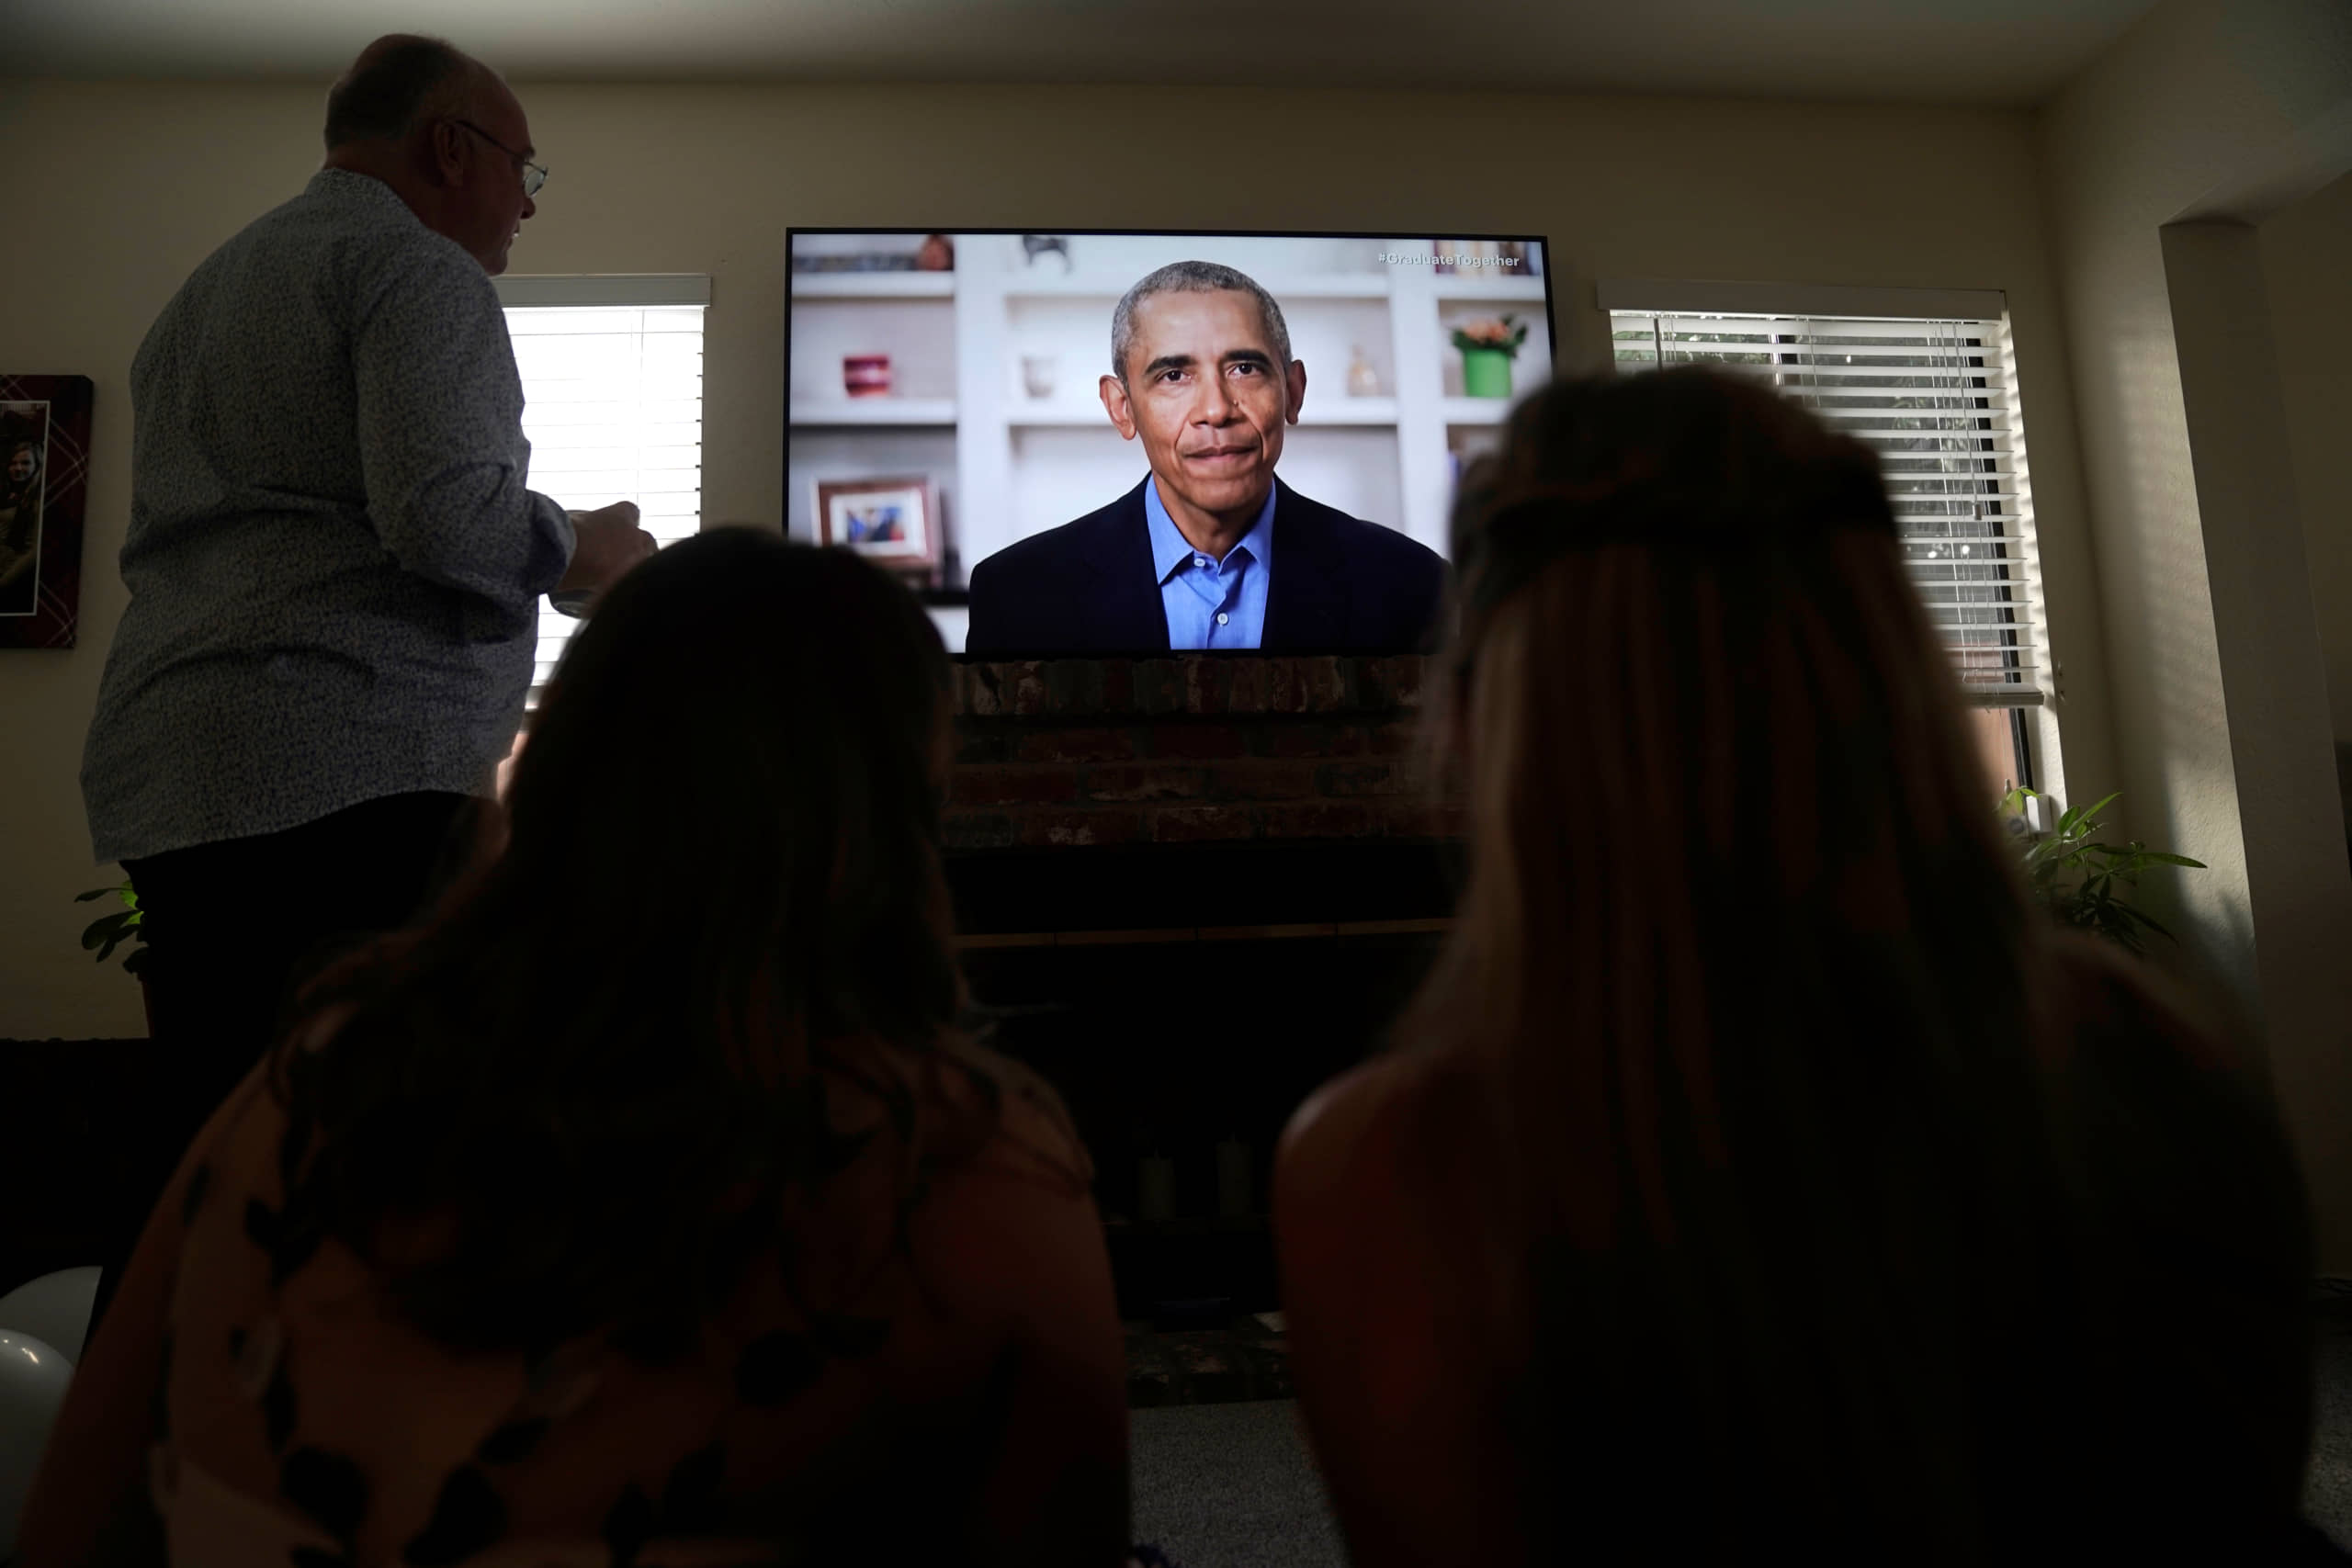 Torrey Pines High School graduating student Phoebe Seip, 18 (right), her father, Jake, 57, and her sister, Sydney, 22, watch former U.S. President Barack Obama deliver a virtual commencement address to millions of high school seniors who will miss graduation ceremonies due to the coronavirus pandemic, while celebrating Phoebe's canceled prom night at home in San Diego on Saturday. | REUTERS